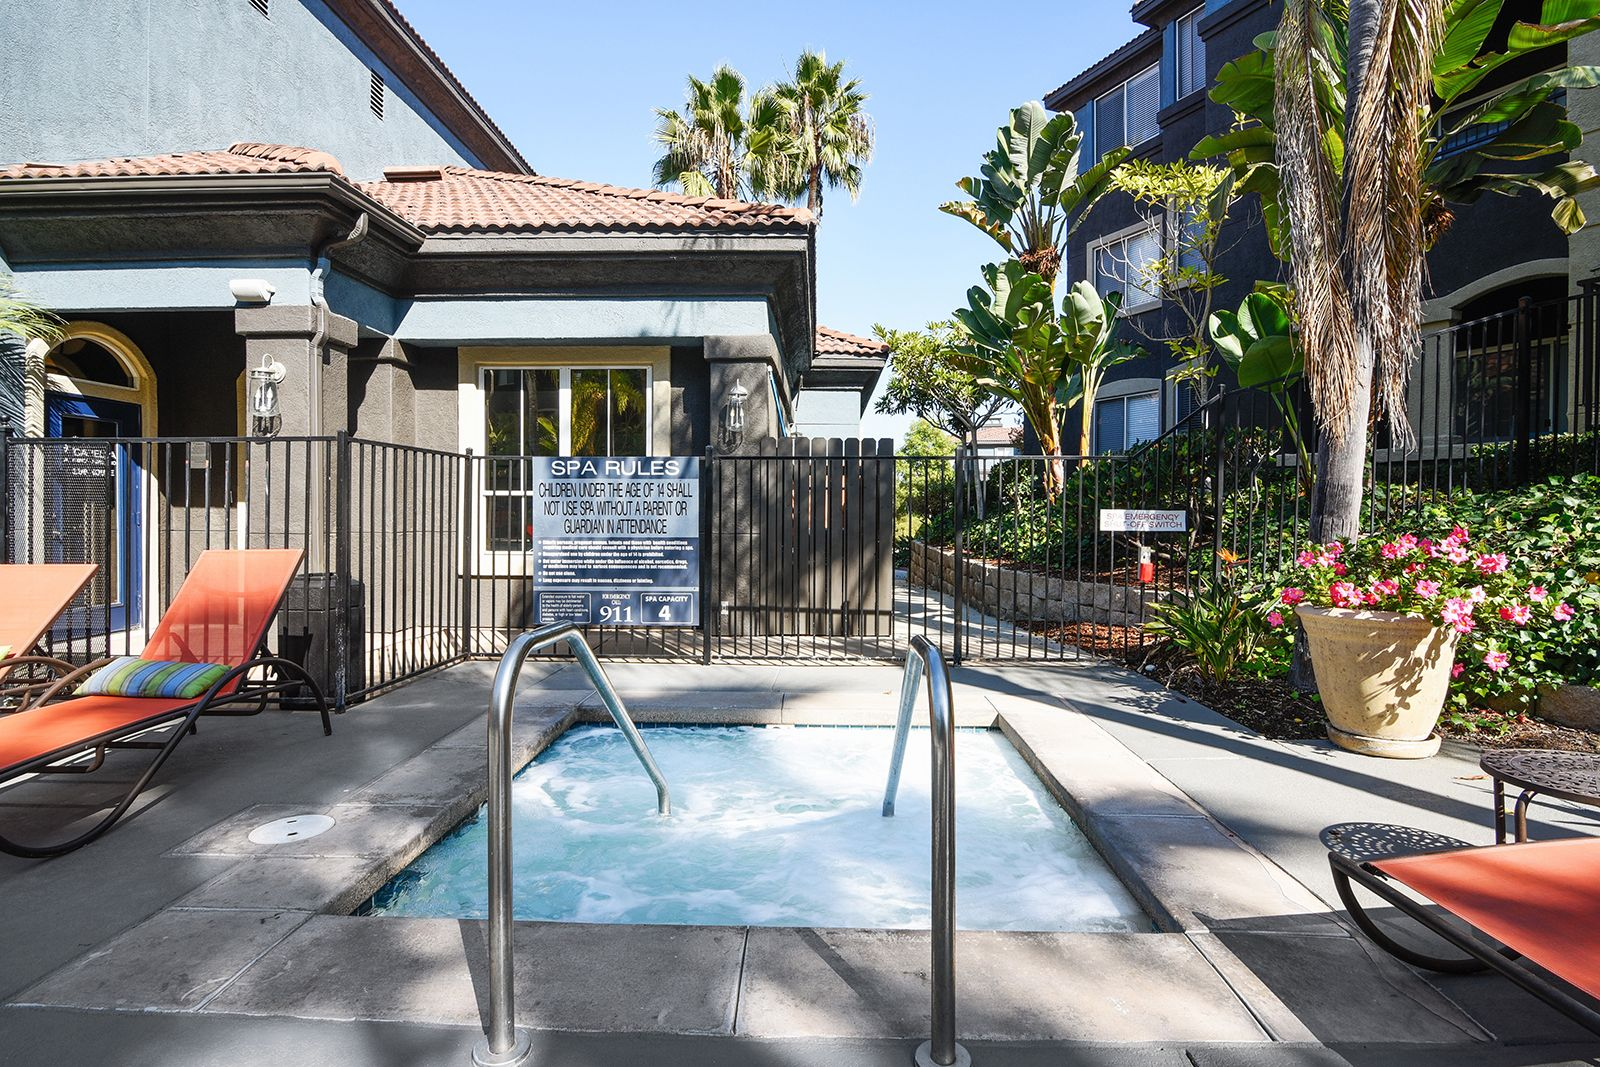 Our Spa Is An Amazing Place To Relax On Those Chilly California Nights Capellaatranchodeloro Ca Apar Renting A House Bedroom Floor Plans Luxury Apartments